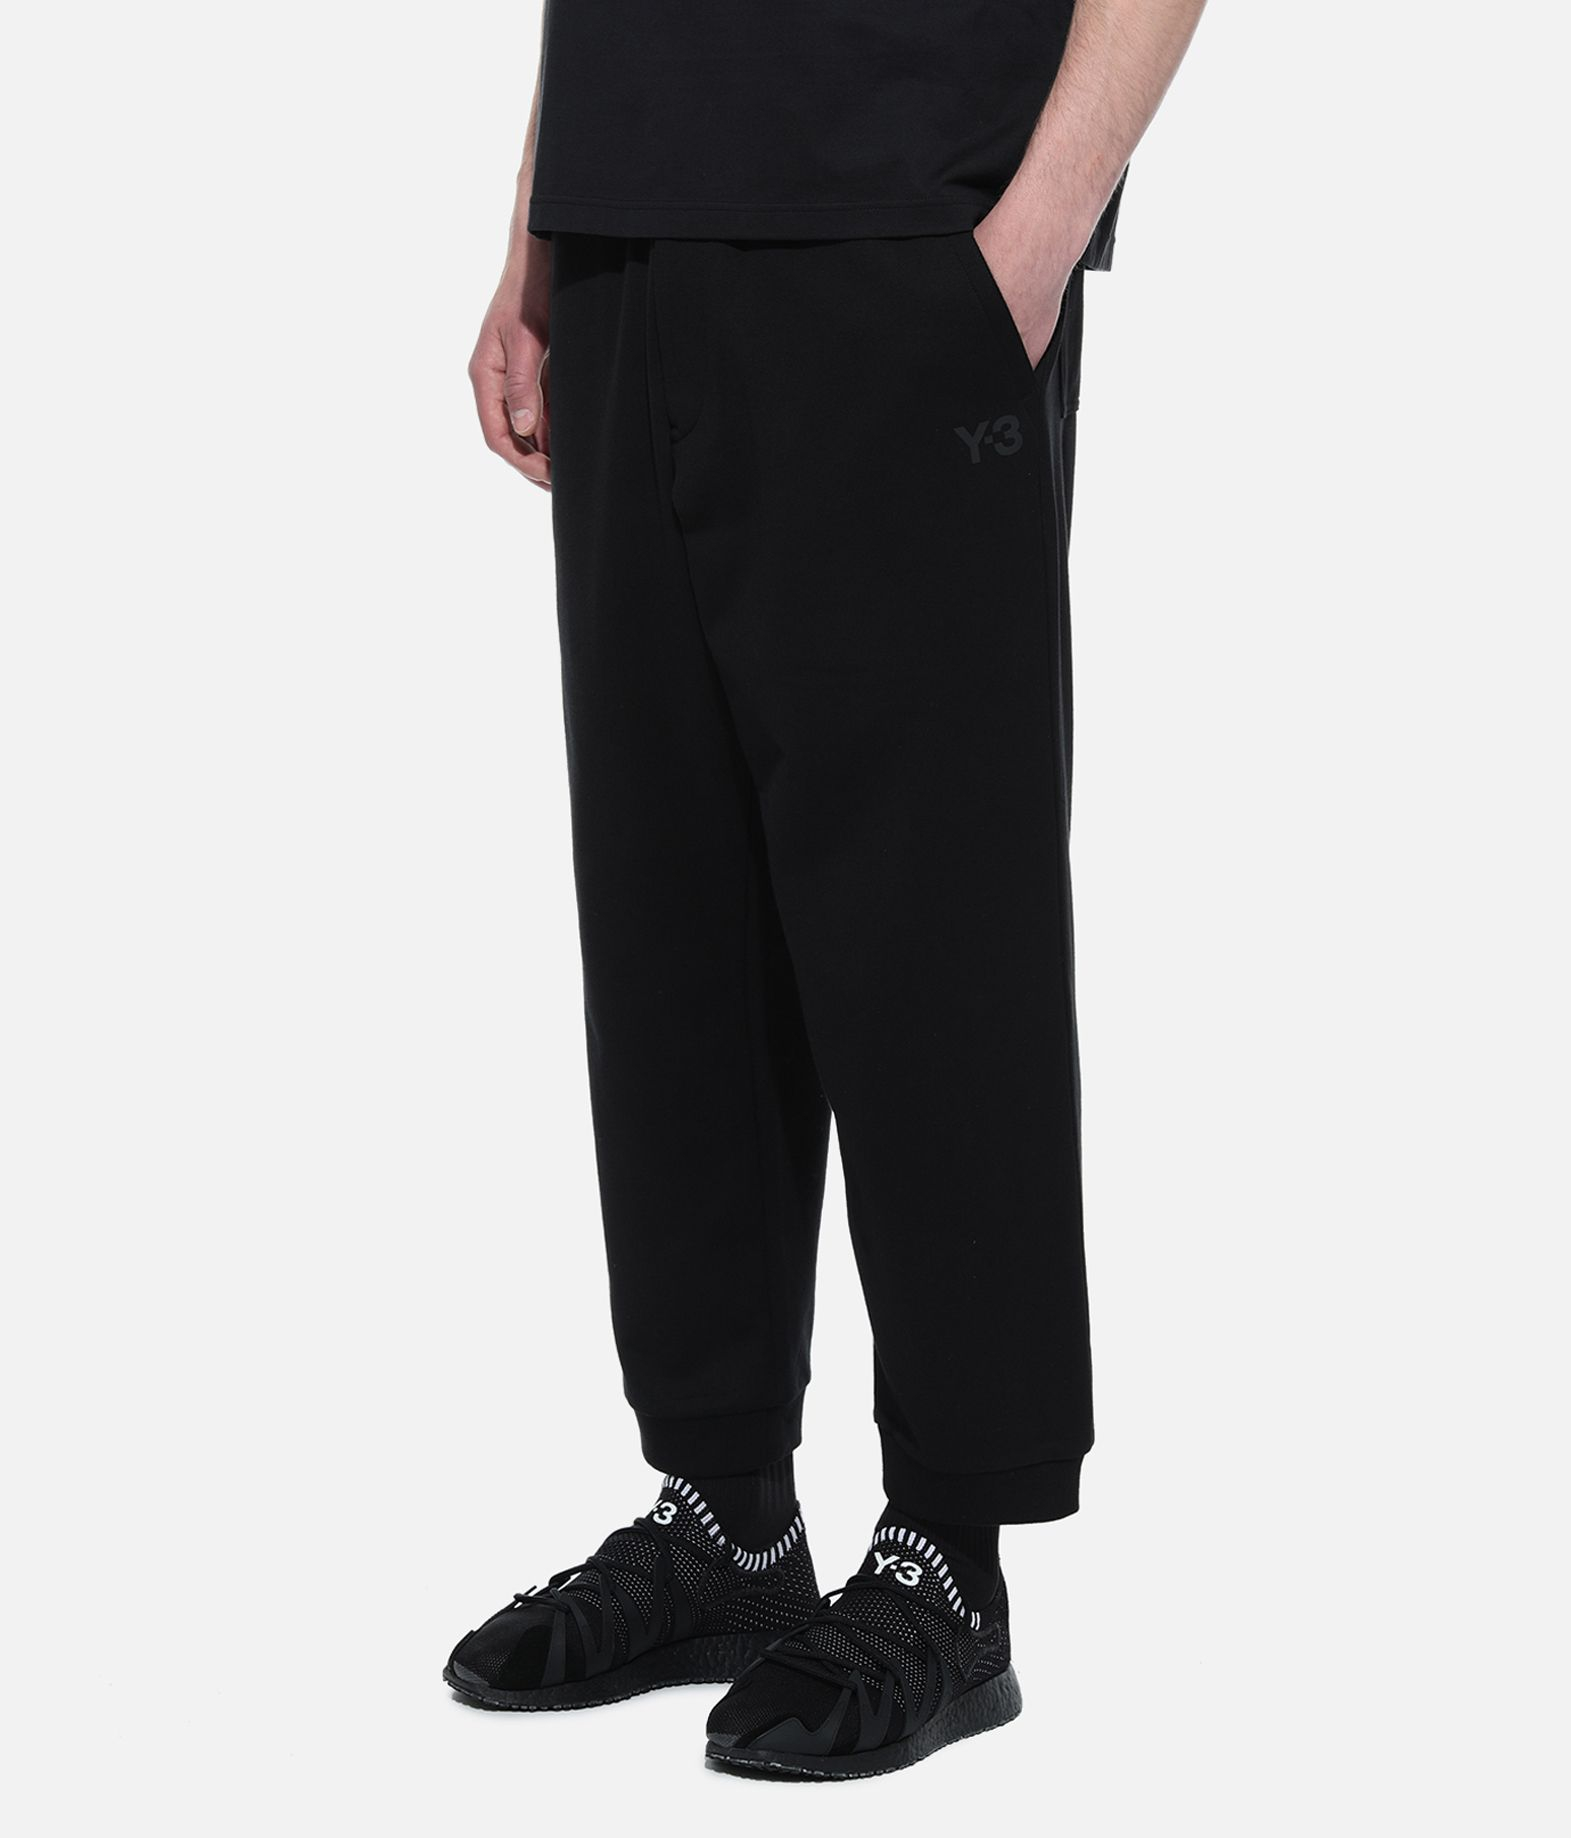 Y-3 Y-3 3-Stripes Cuff Pants Casual trouser Man e